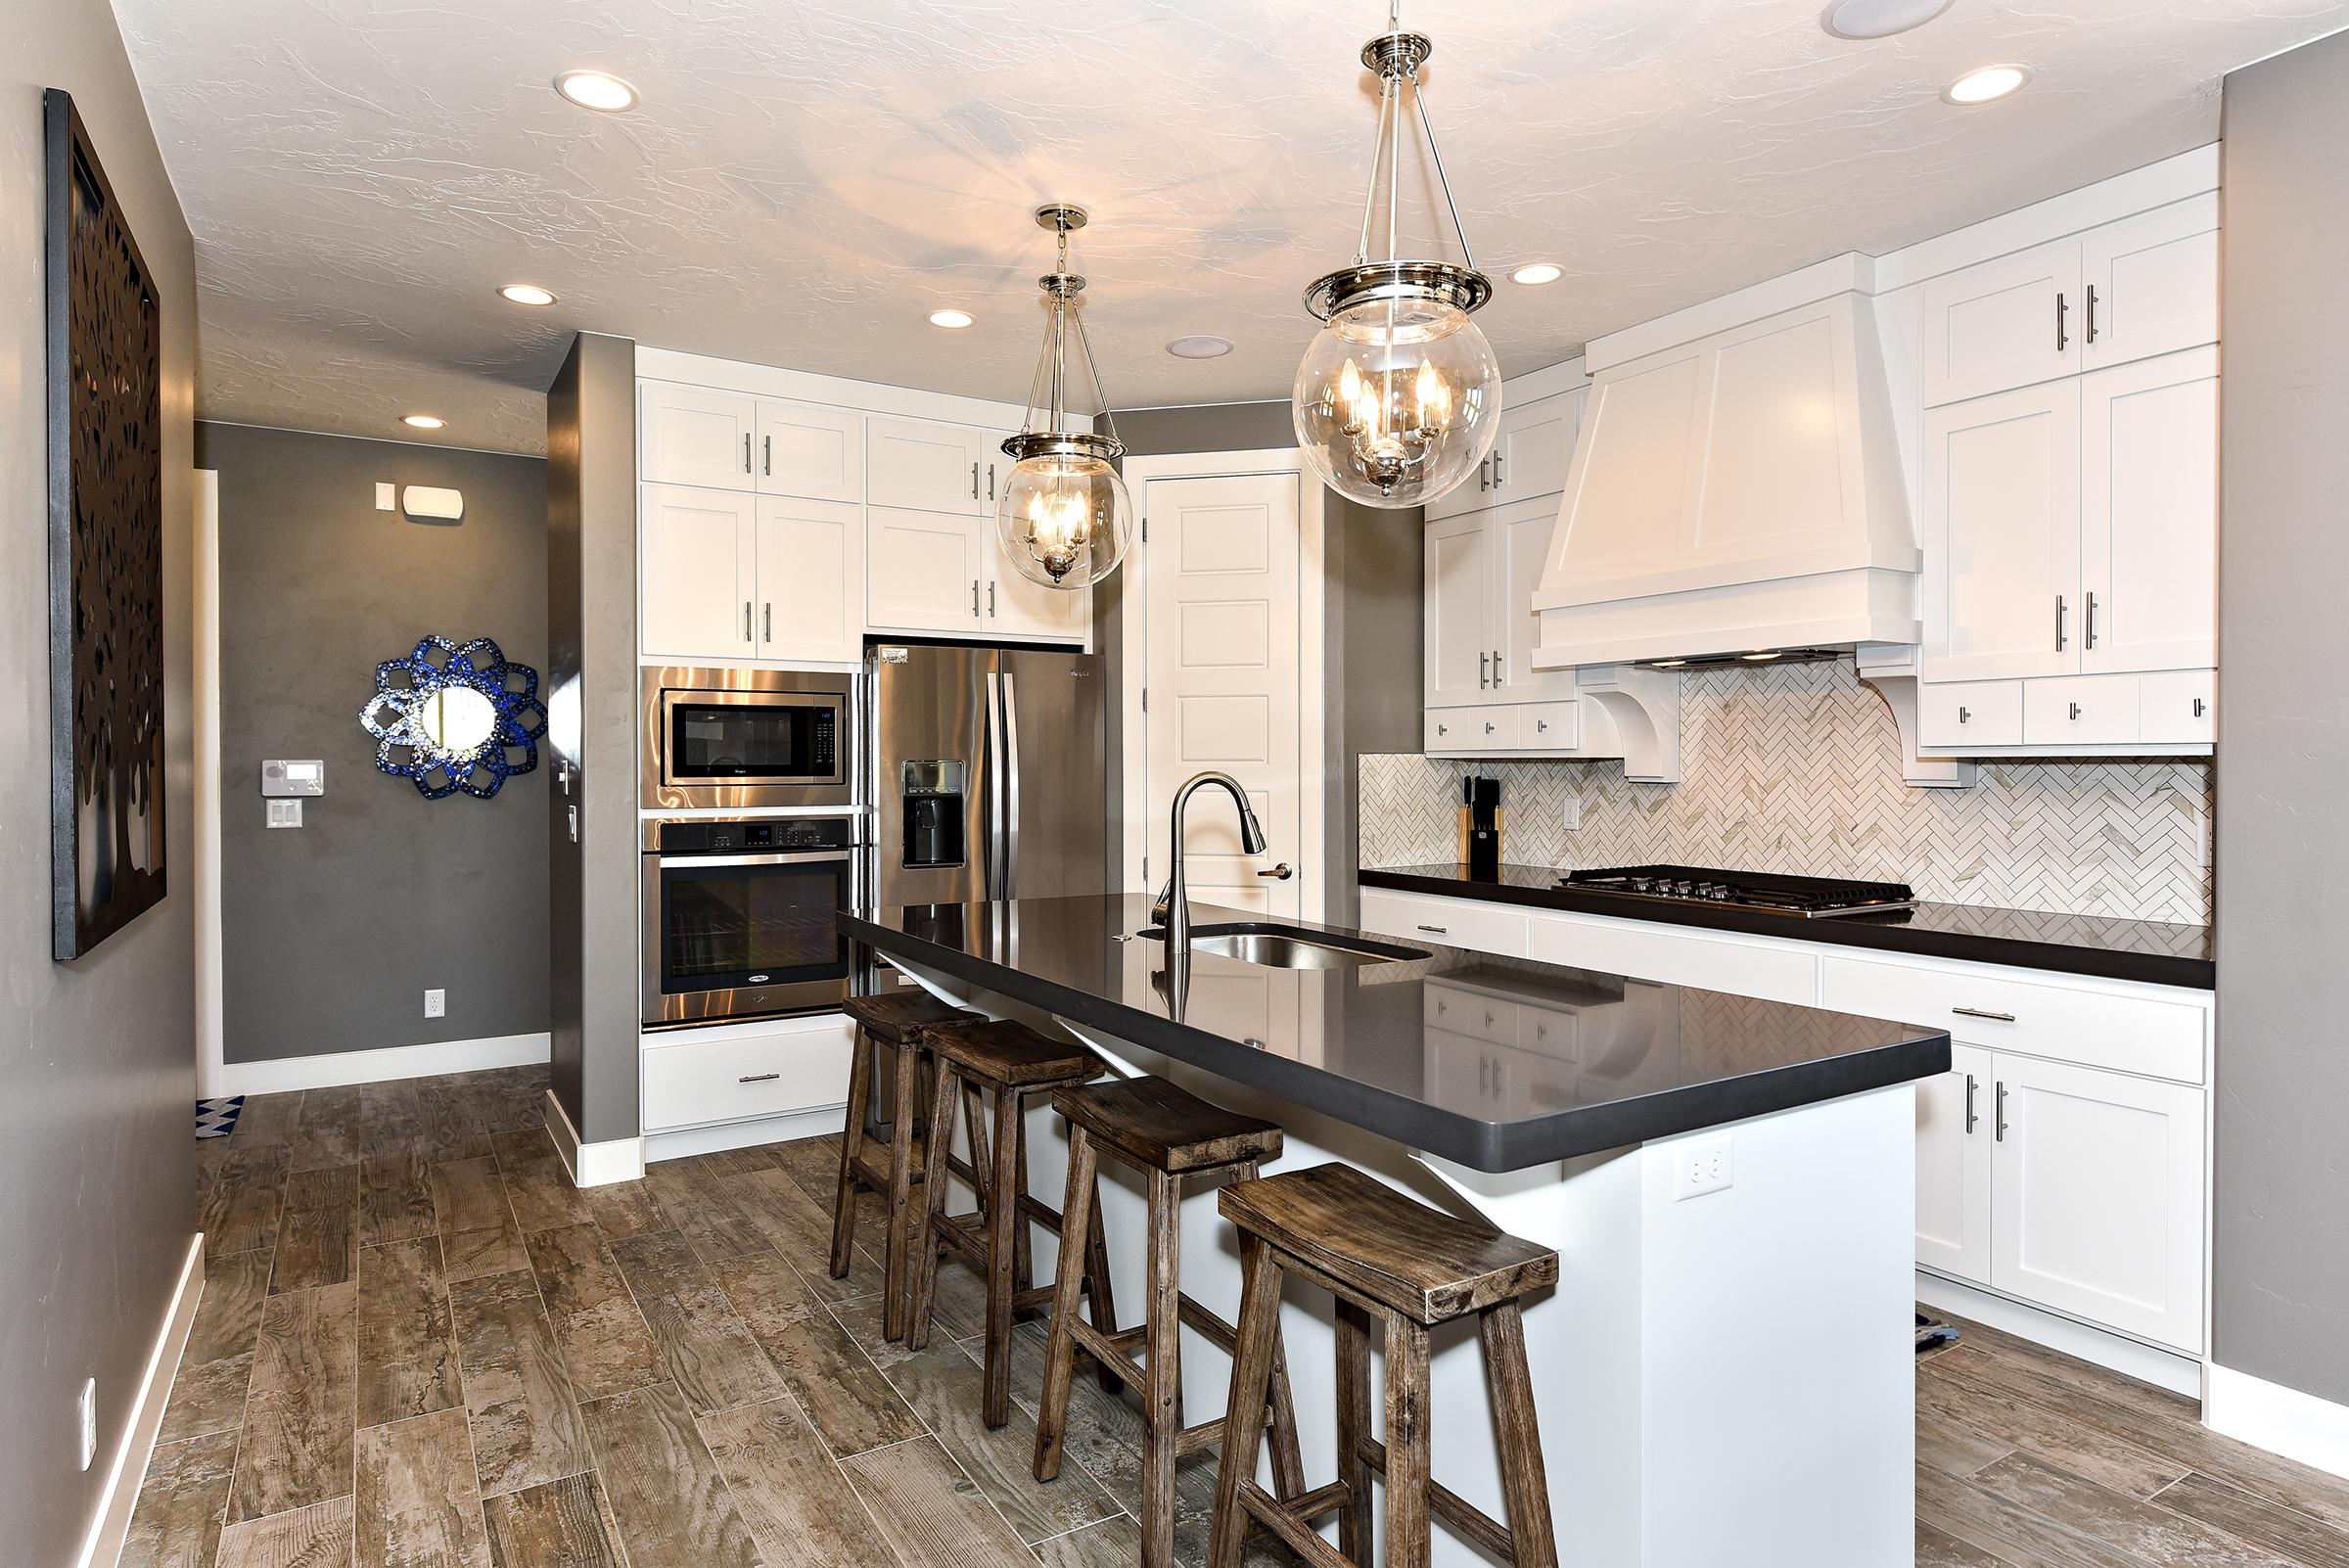 With all the upgrades and top-of-the-line stainless steel appliances, the Kitchen is fully stocked and ready to accommodate any meal preparations you desire.